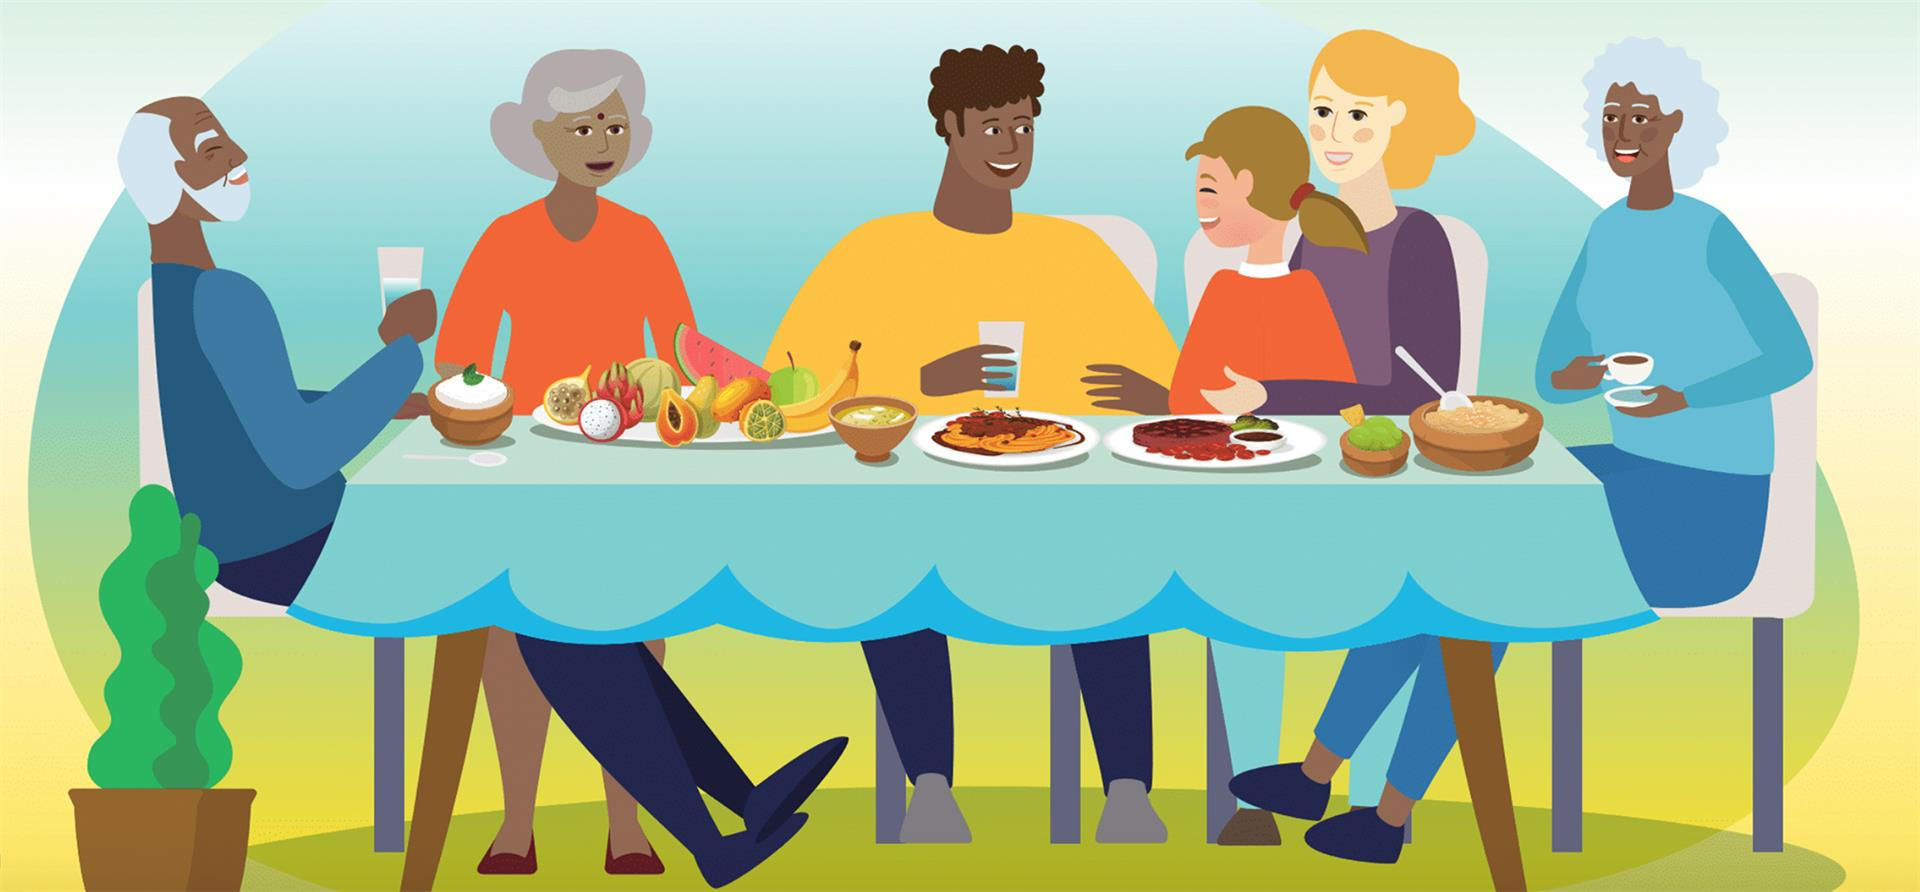 Graphic of a group of people eating food at a table